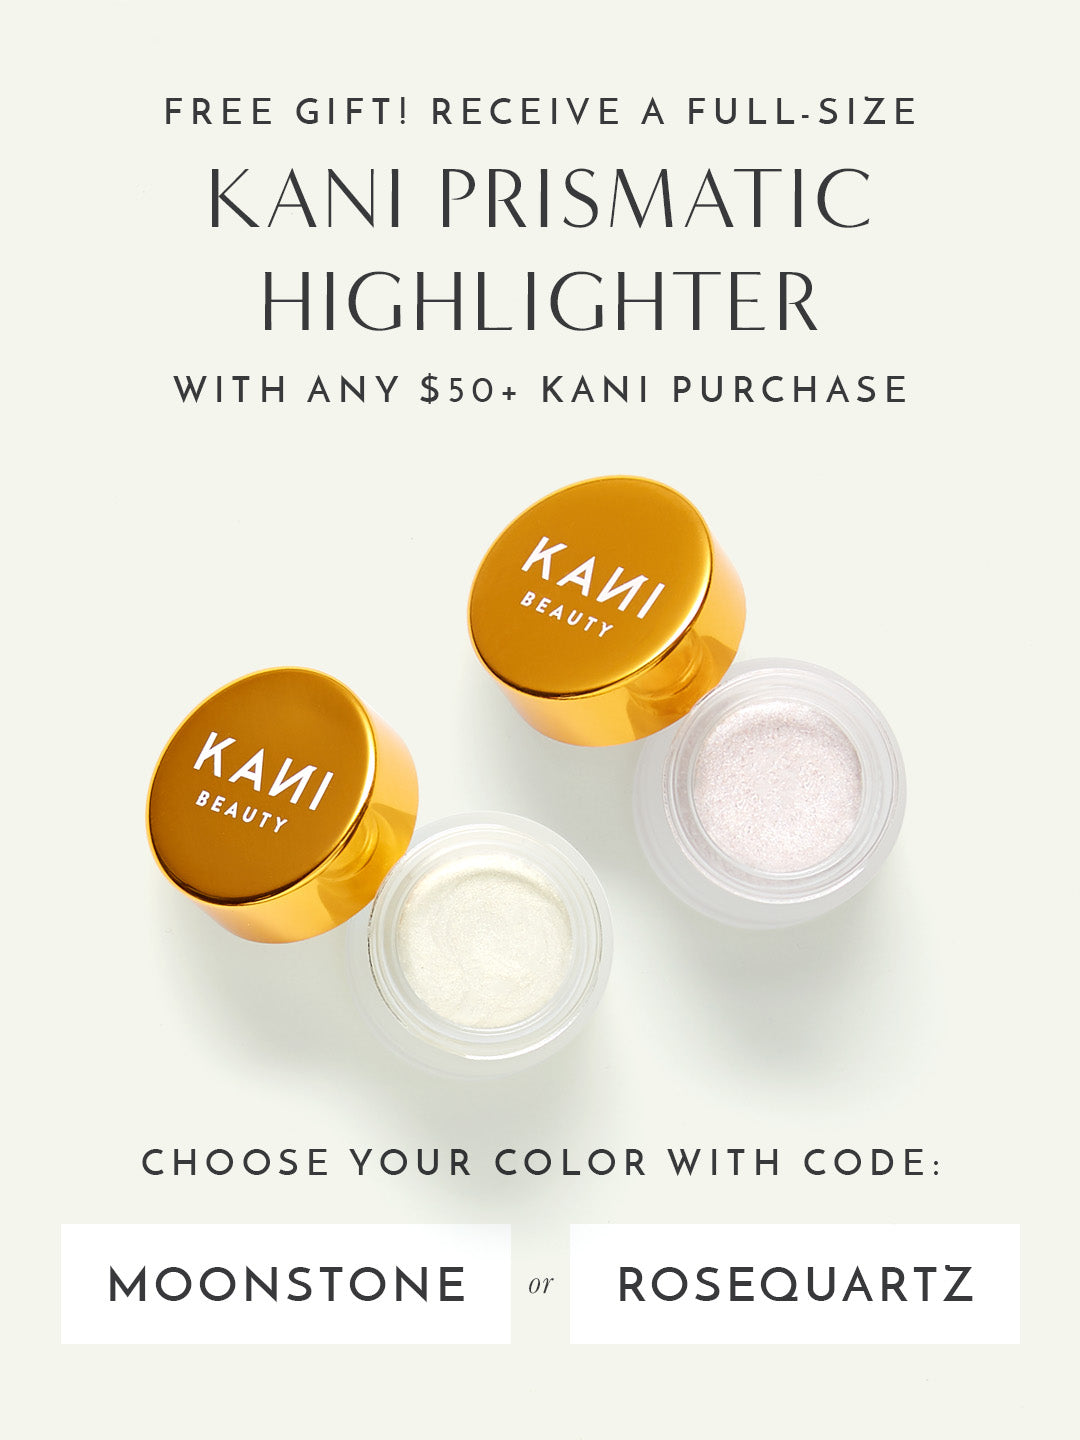 FREE Full-Size Prismatic Highlighter with any $50+ Kani purchase. Use code: MOONSTONE or ROSEQUARTZ